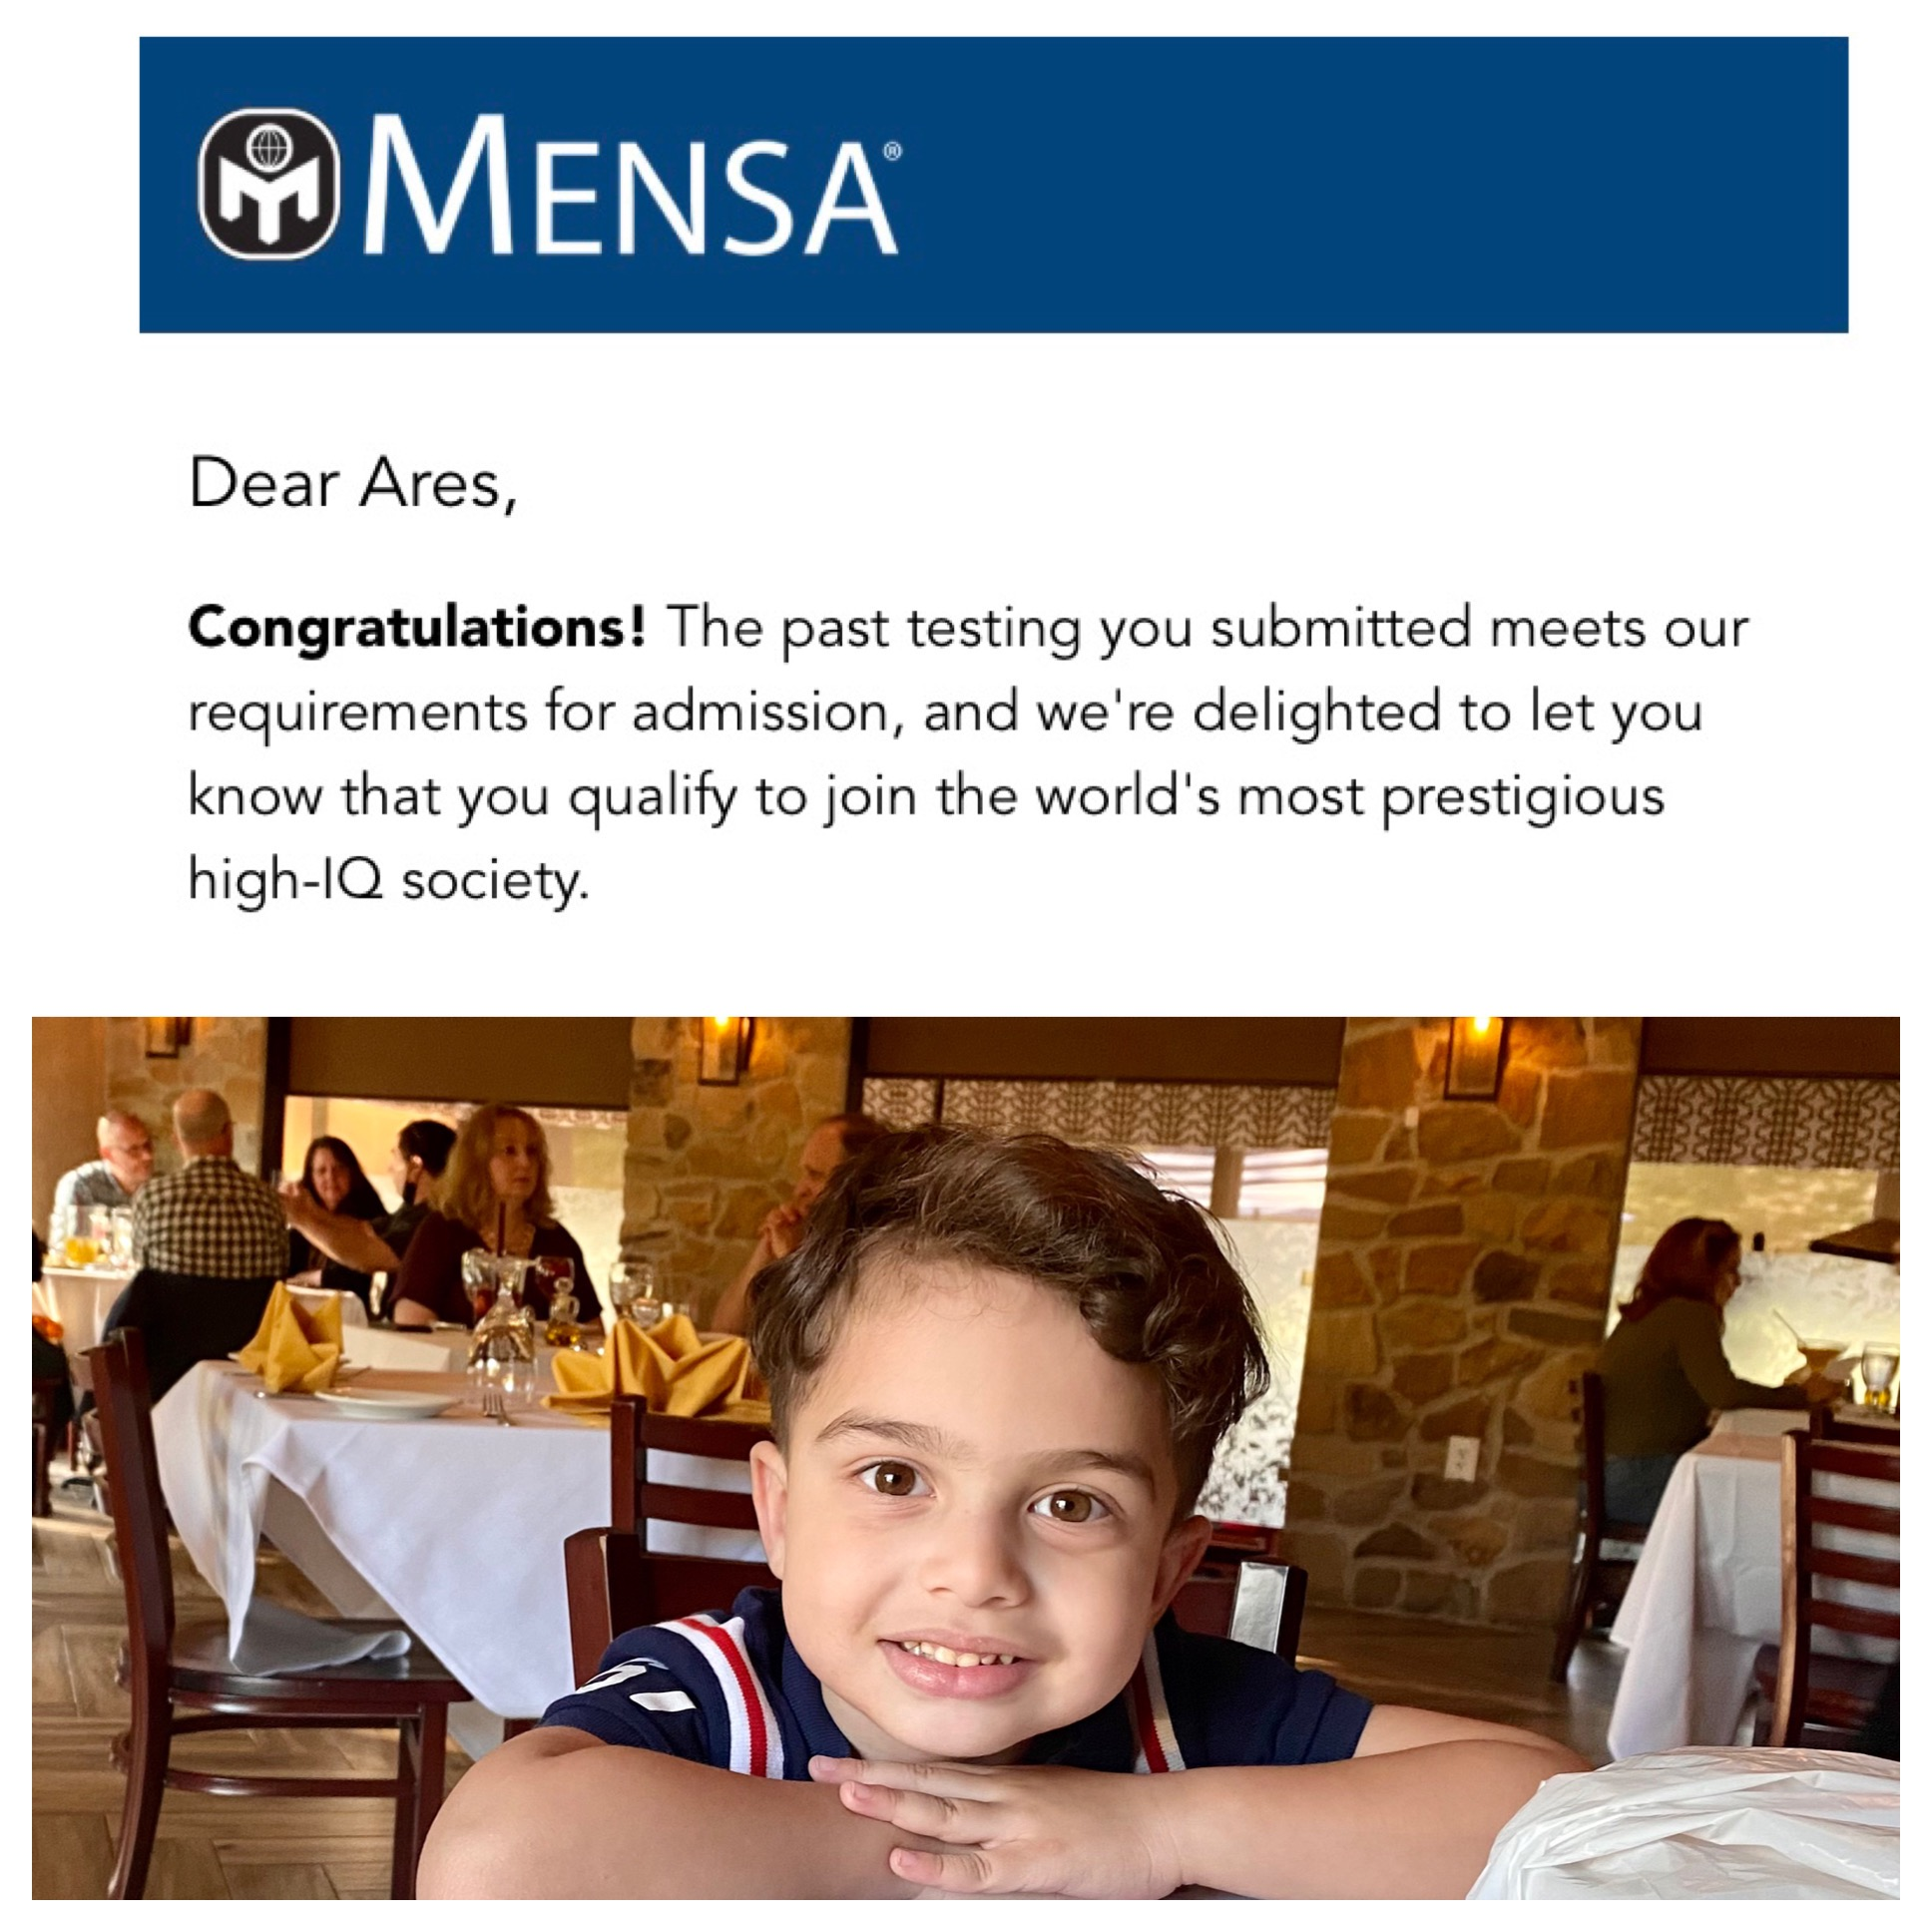 Ares Mason Miller from Staten Island, NY Creates History as One of the Youngest Members of MENSA.